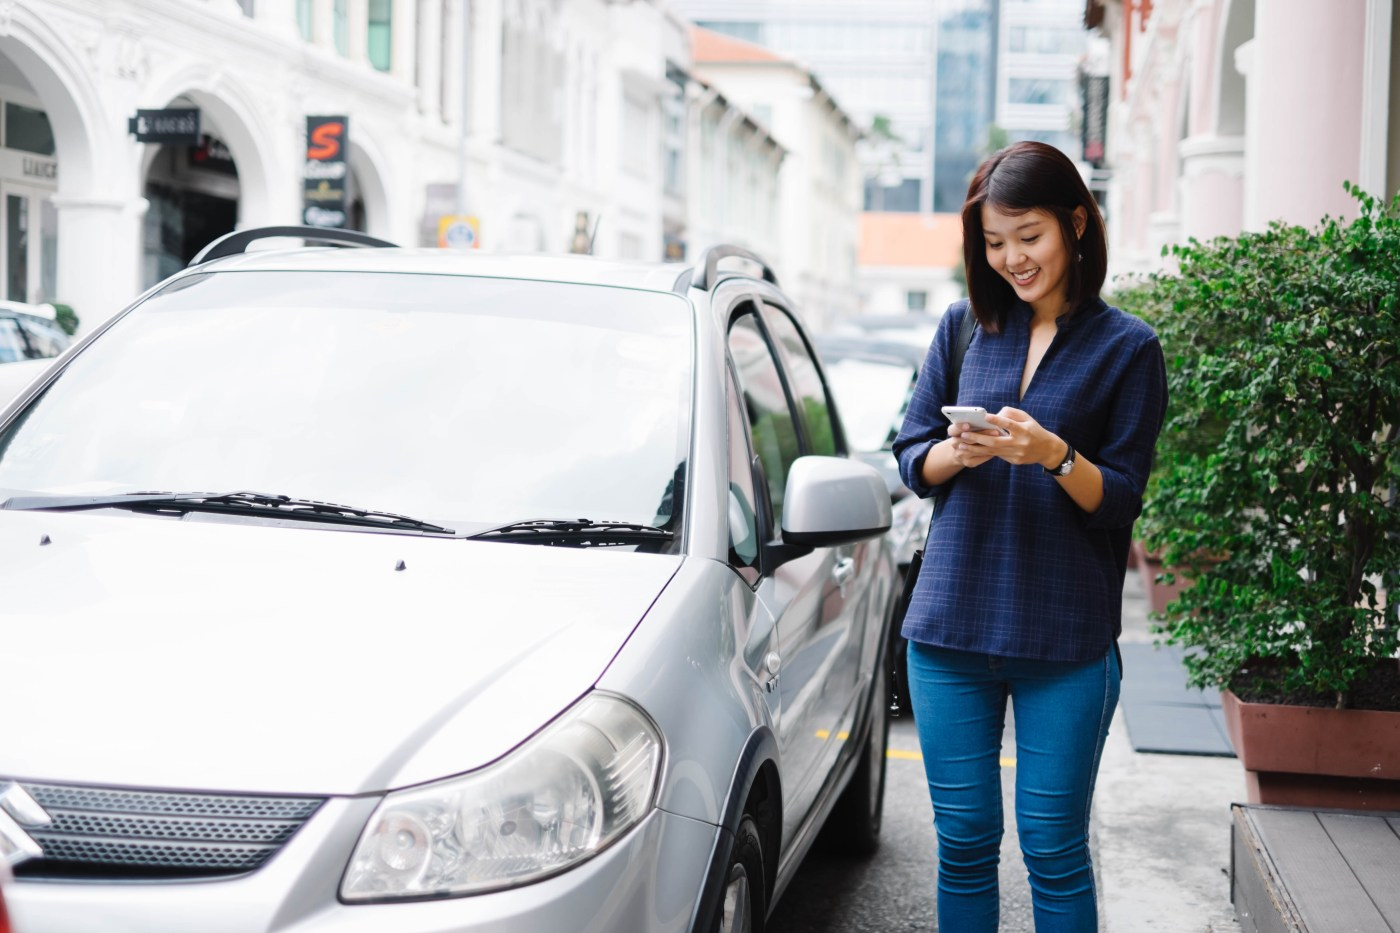 The carpooling app Ryde will launch its new private-hire car service RydeX in Singapore.